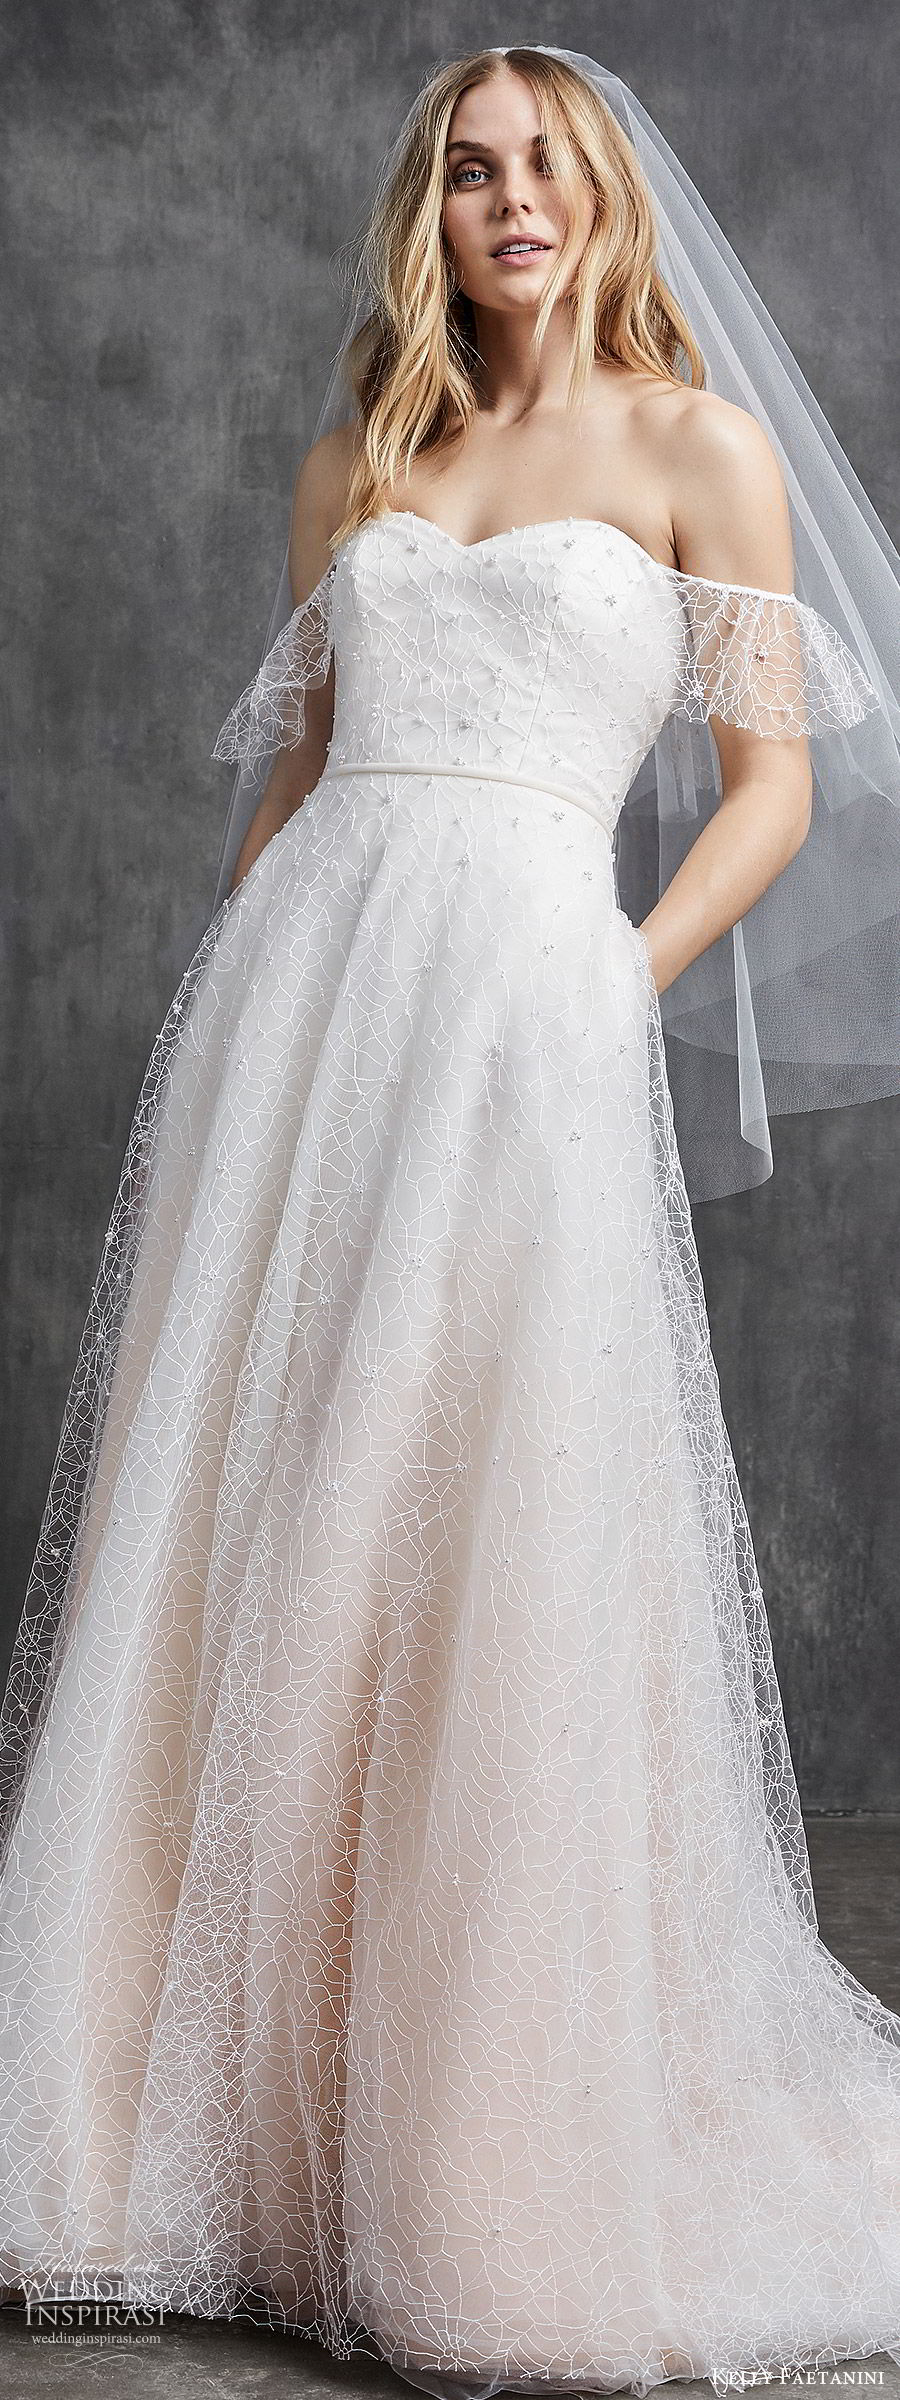 kelly faetanini spring 2020 bridal off shoulder illusion flutter sleeves sweetheart fully embellished a line ball gown wedding dress (7) ombre blush chapel train lv